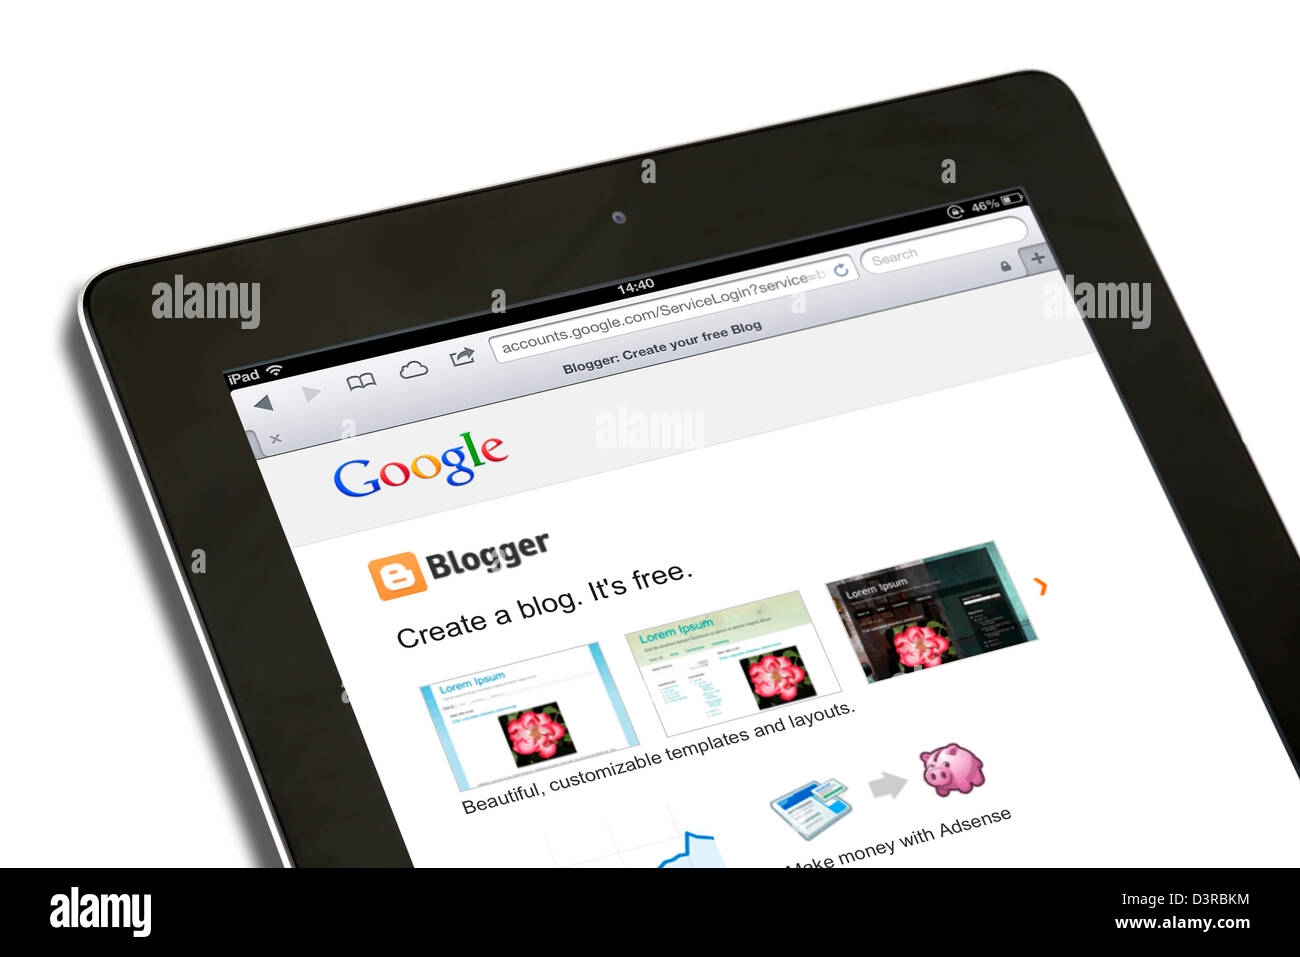 Creating a blog through Google's Blogger site on a 4th generation iPad - Stock Image